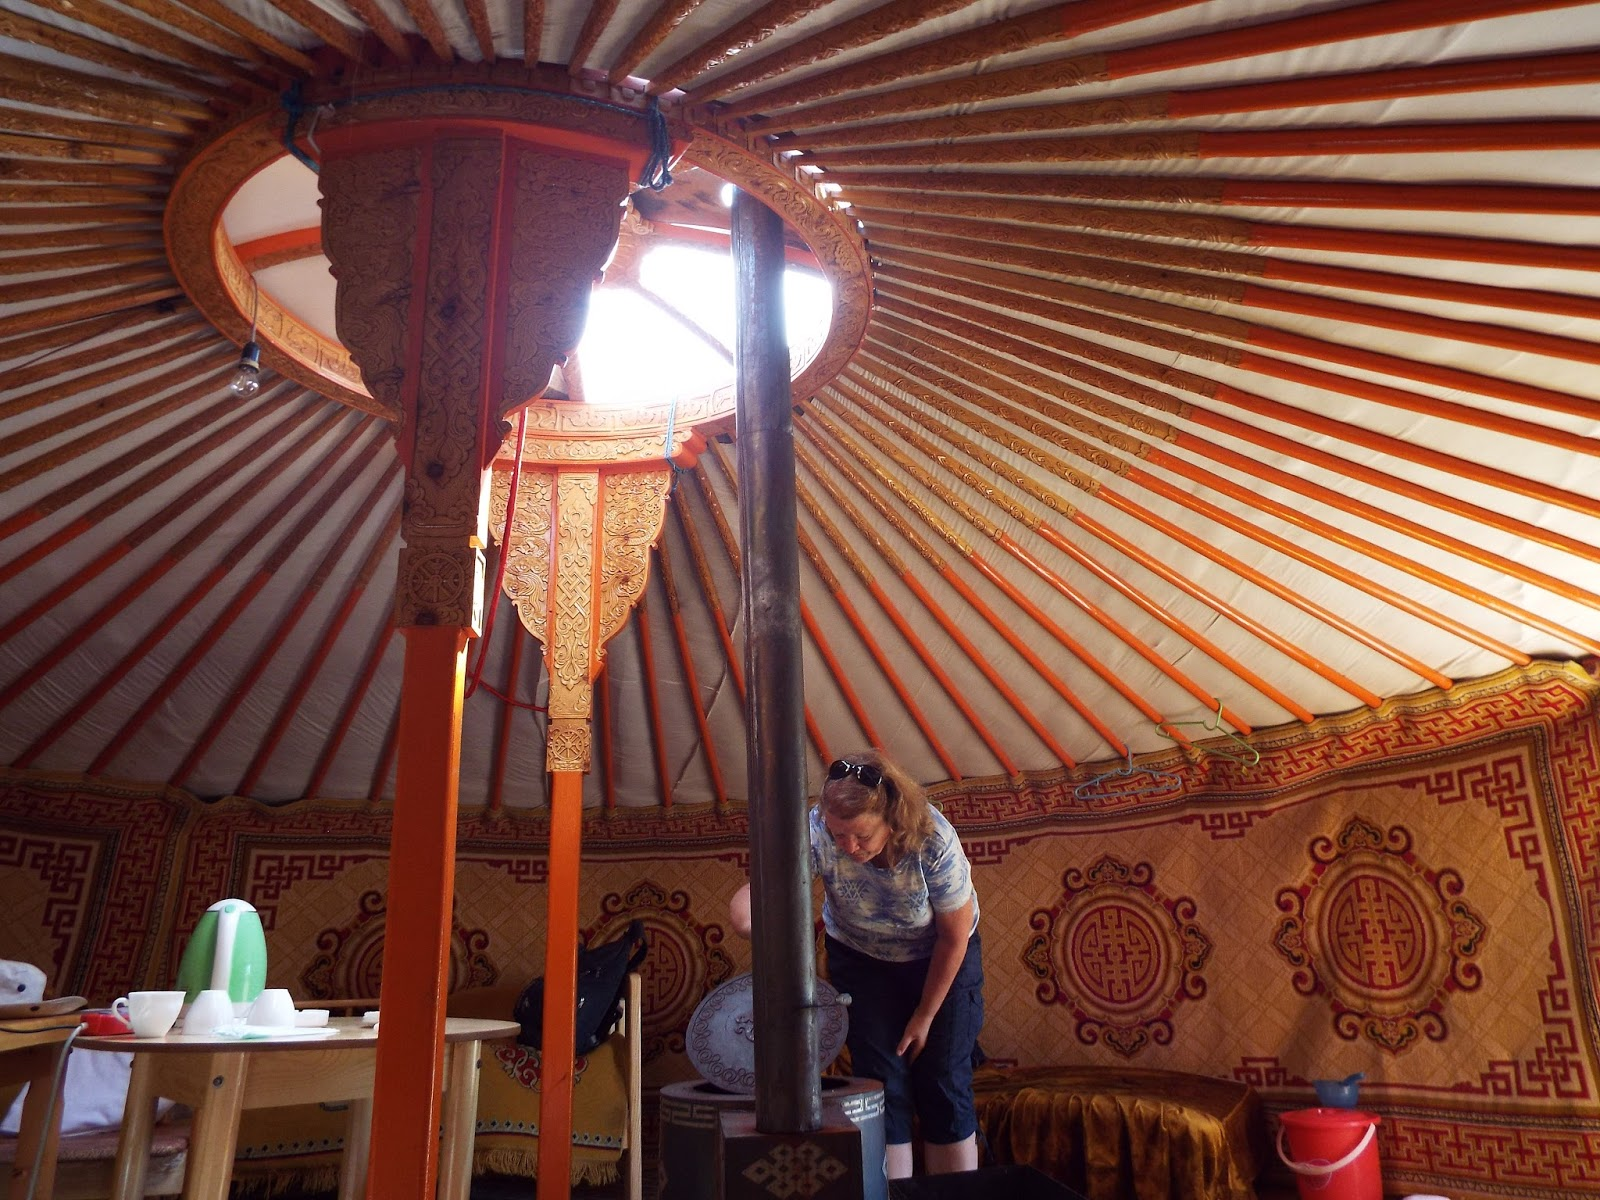 momgol ia Mongolia's cold, dry climate can result in incredible archaeological finds, but a harsh economic downturn means looting has risen to disastrous levels.